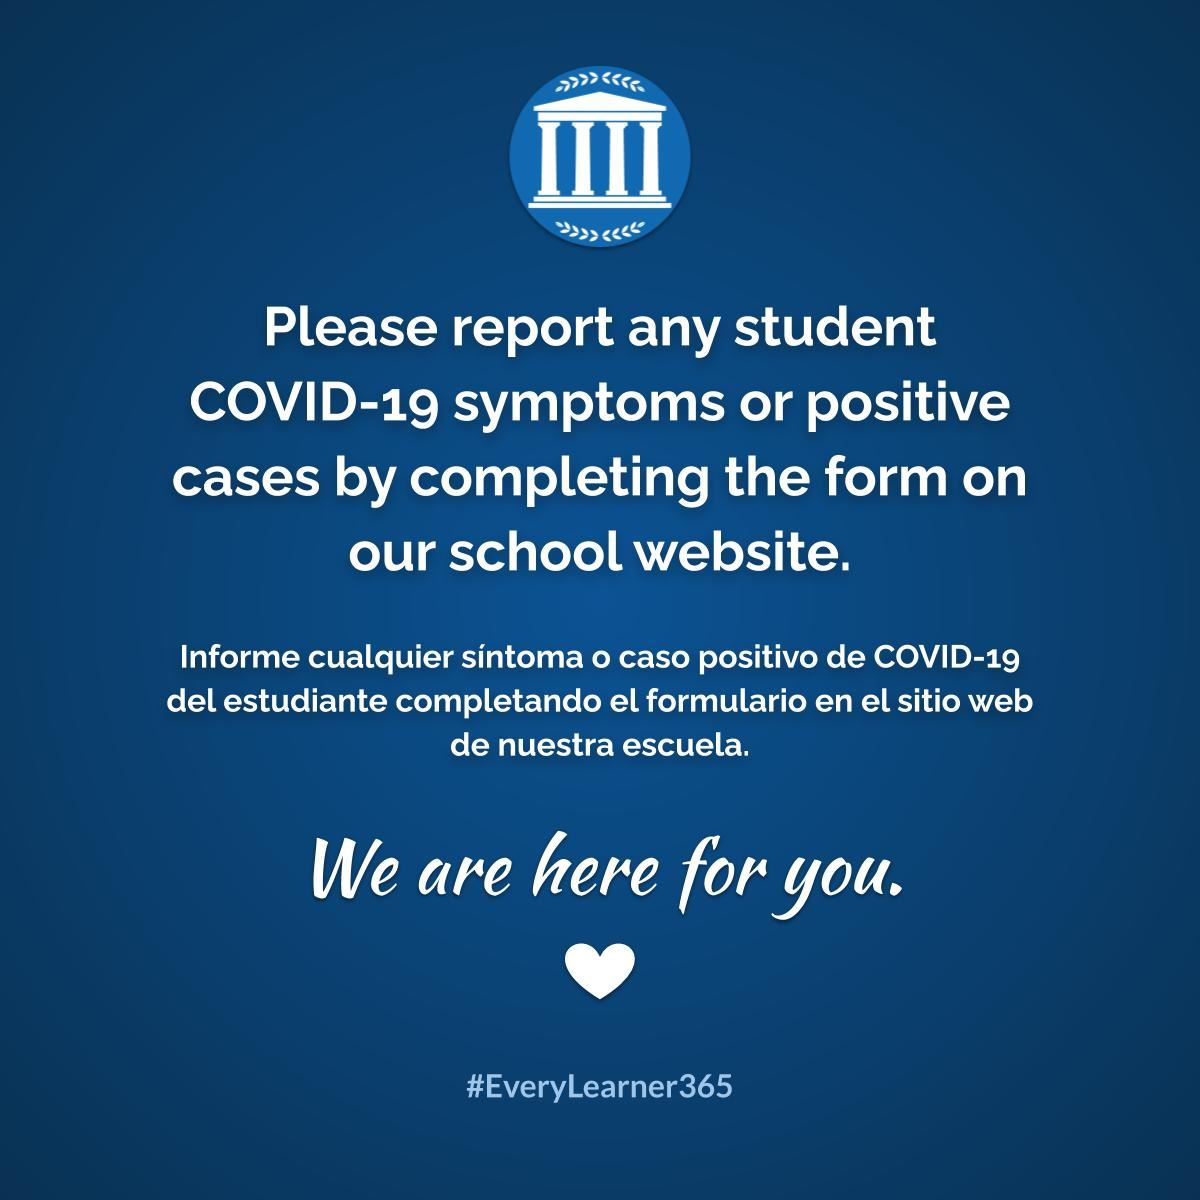 Please report any student COVID-19 symptoms or positive cases by completing the form on our school website. Form is located in the top bar of this page.